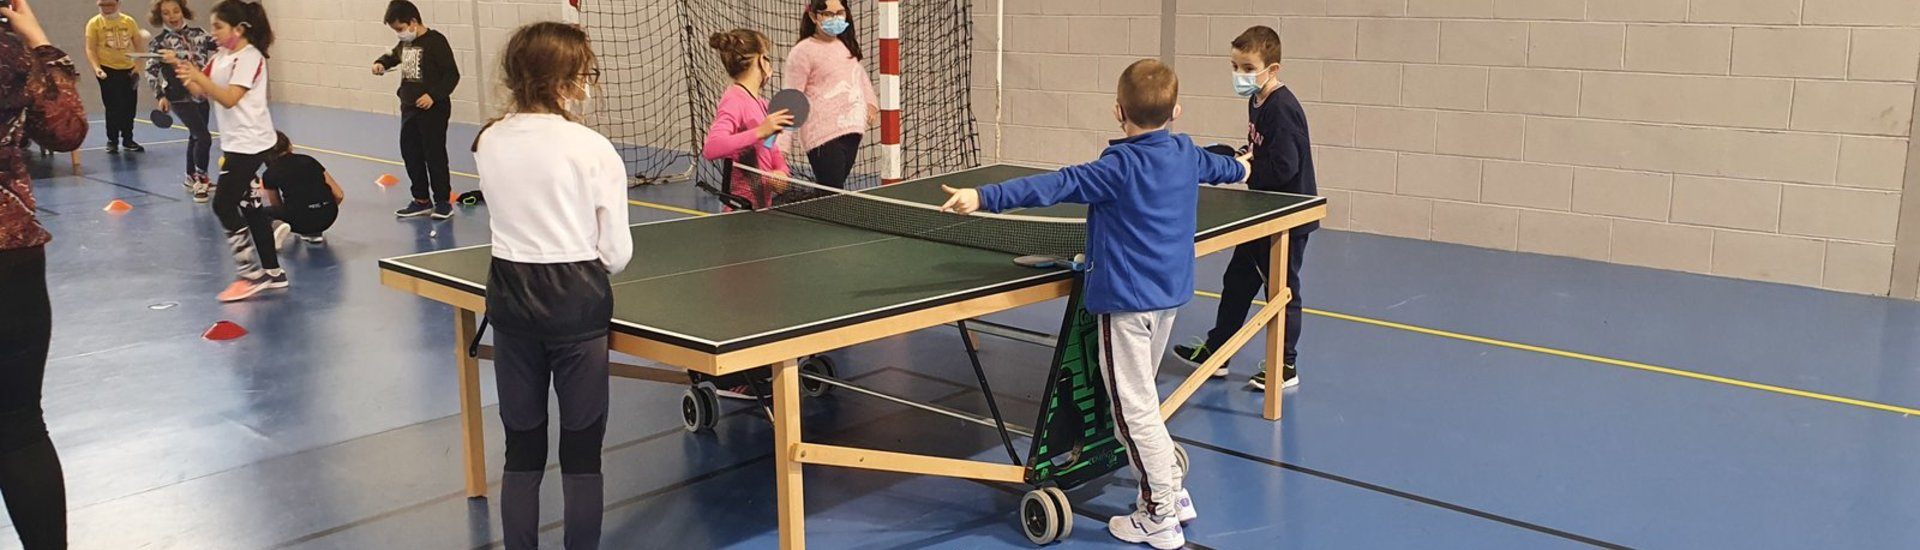 1ère Rencontre Partenariat Tennis de table C3